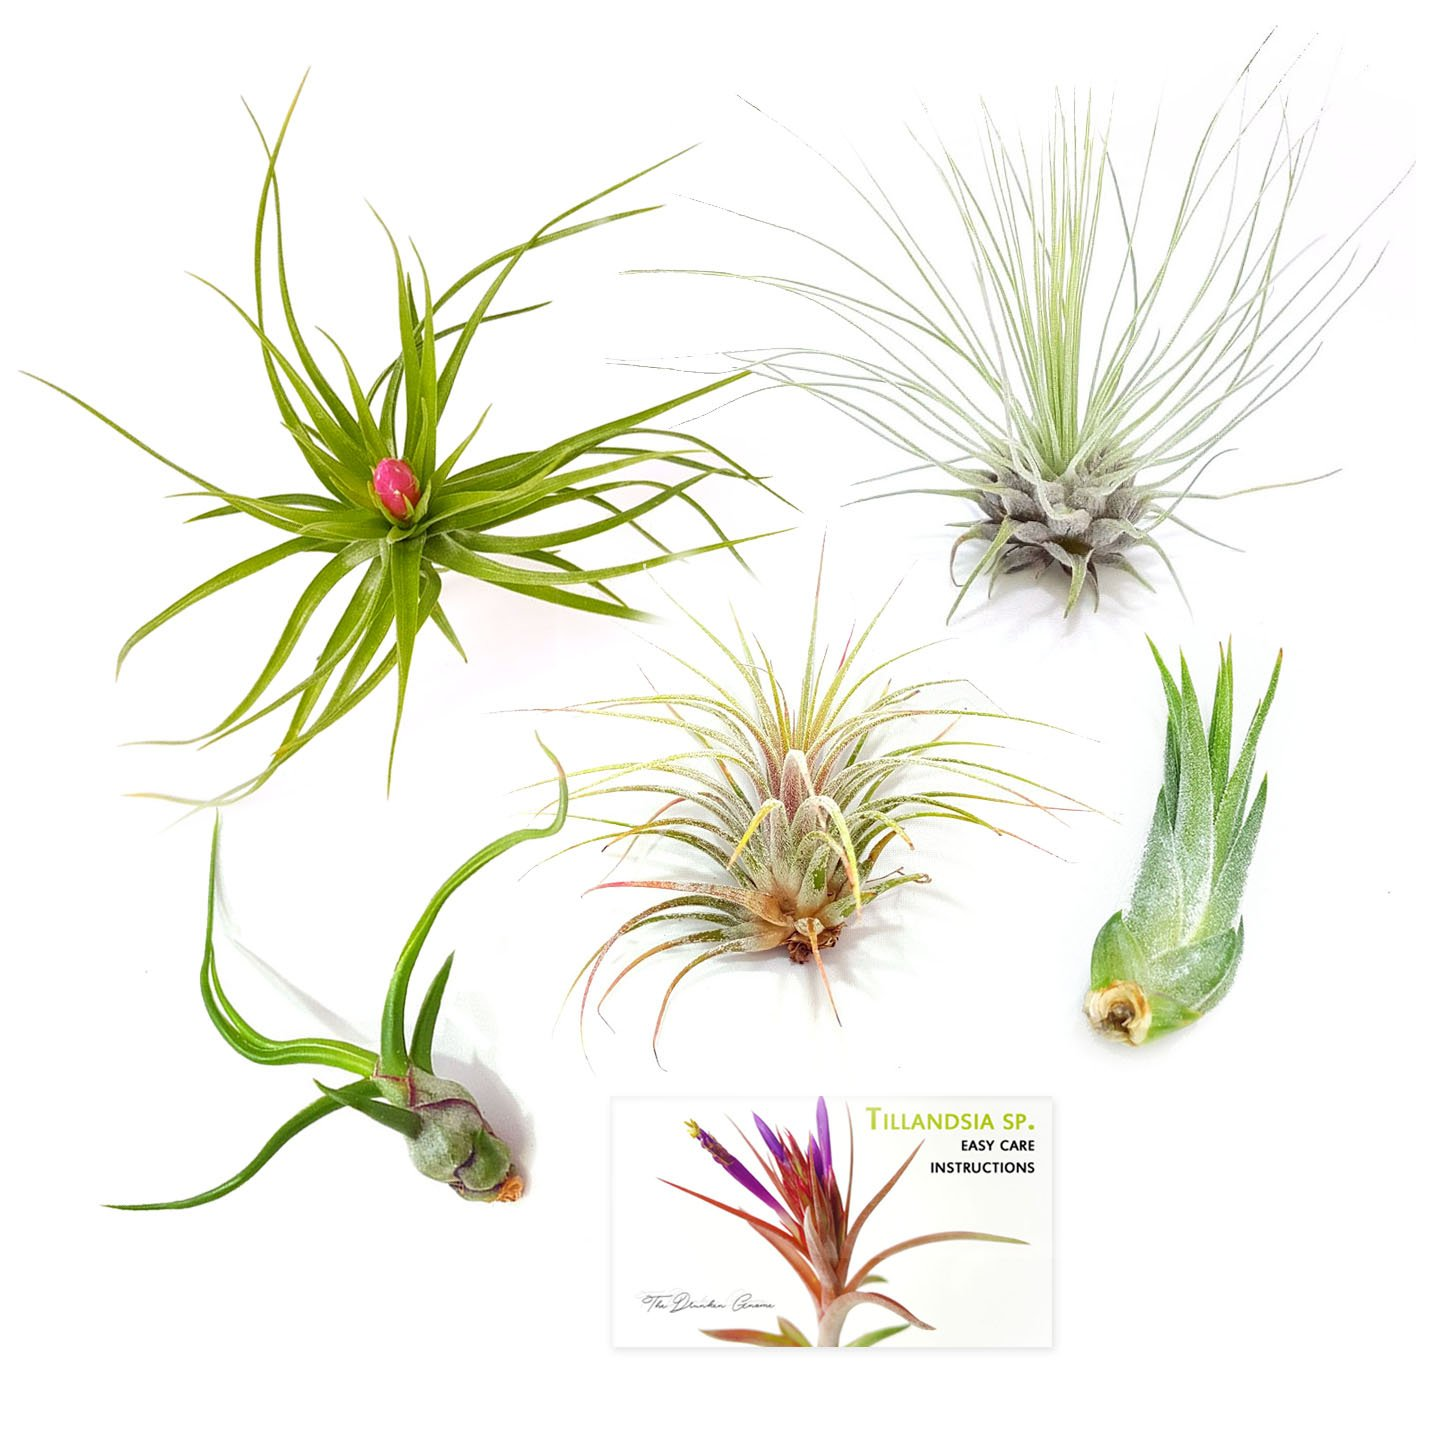 TDG Assorted Tillandsia Air Plants, Pack of 5, Small